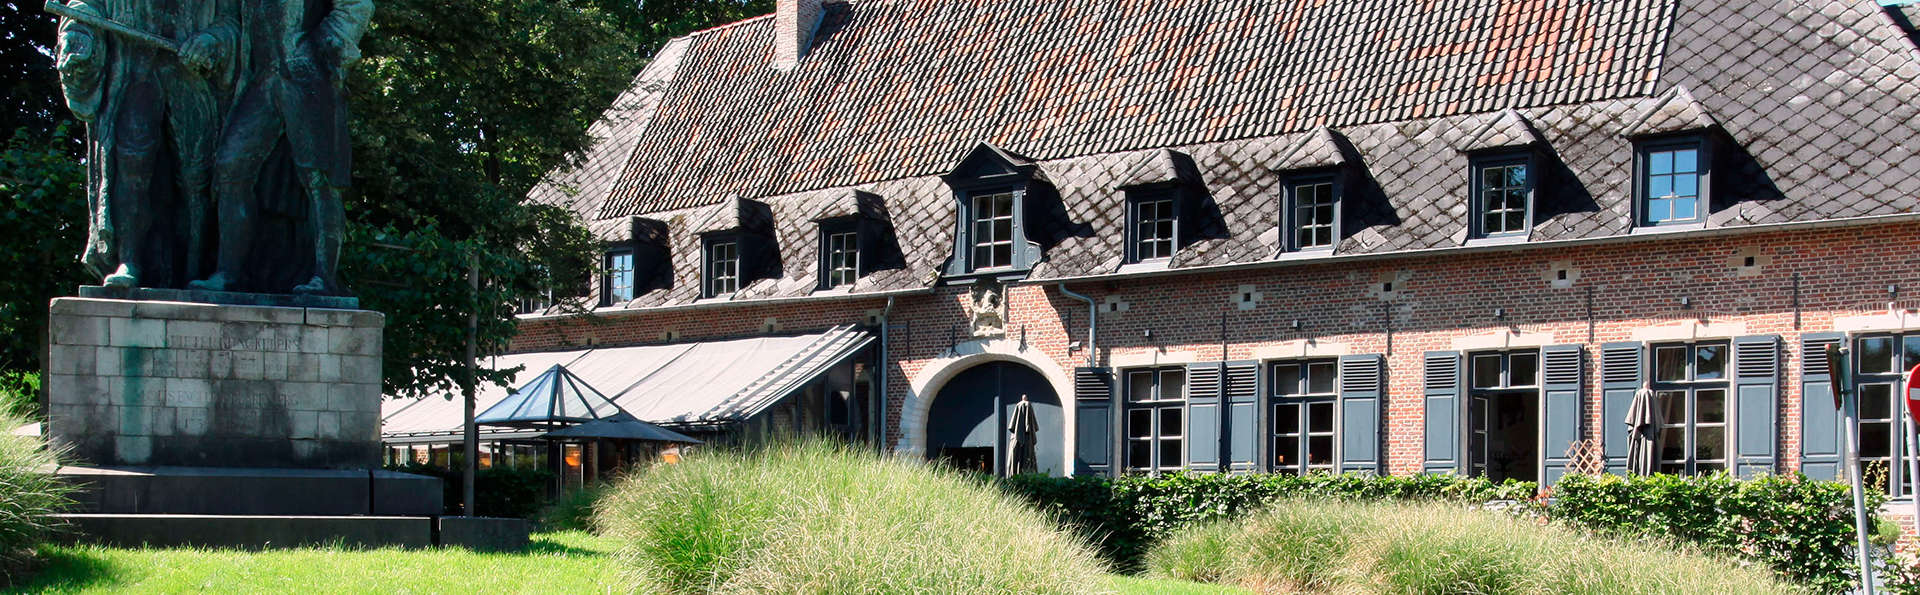 The Lodge Heverlee - edit_Heverlee_Facad.jpg